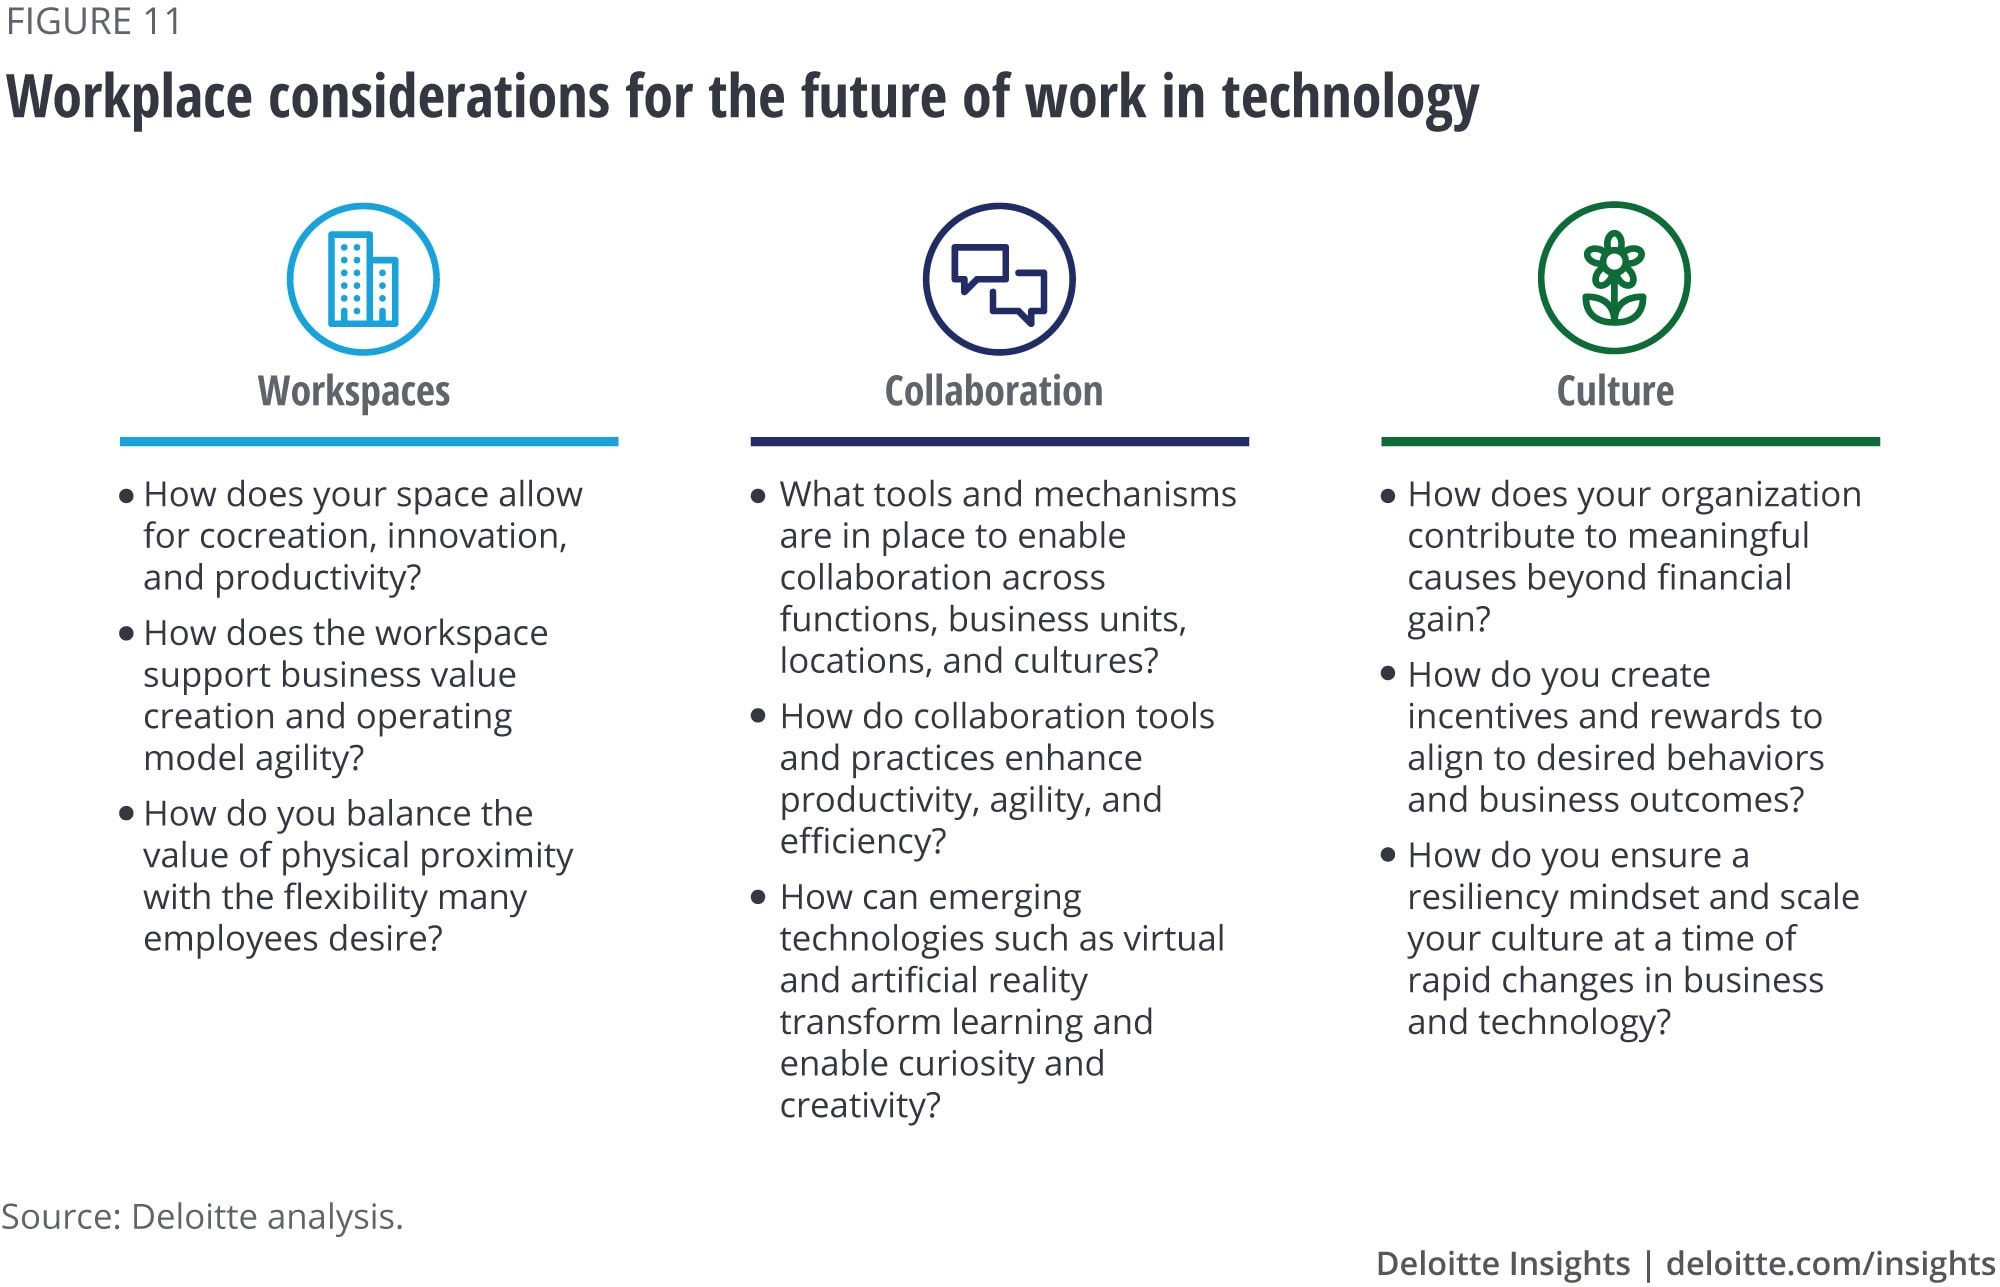 Workplace considerations for the future of work in technology